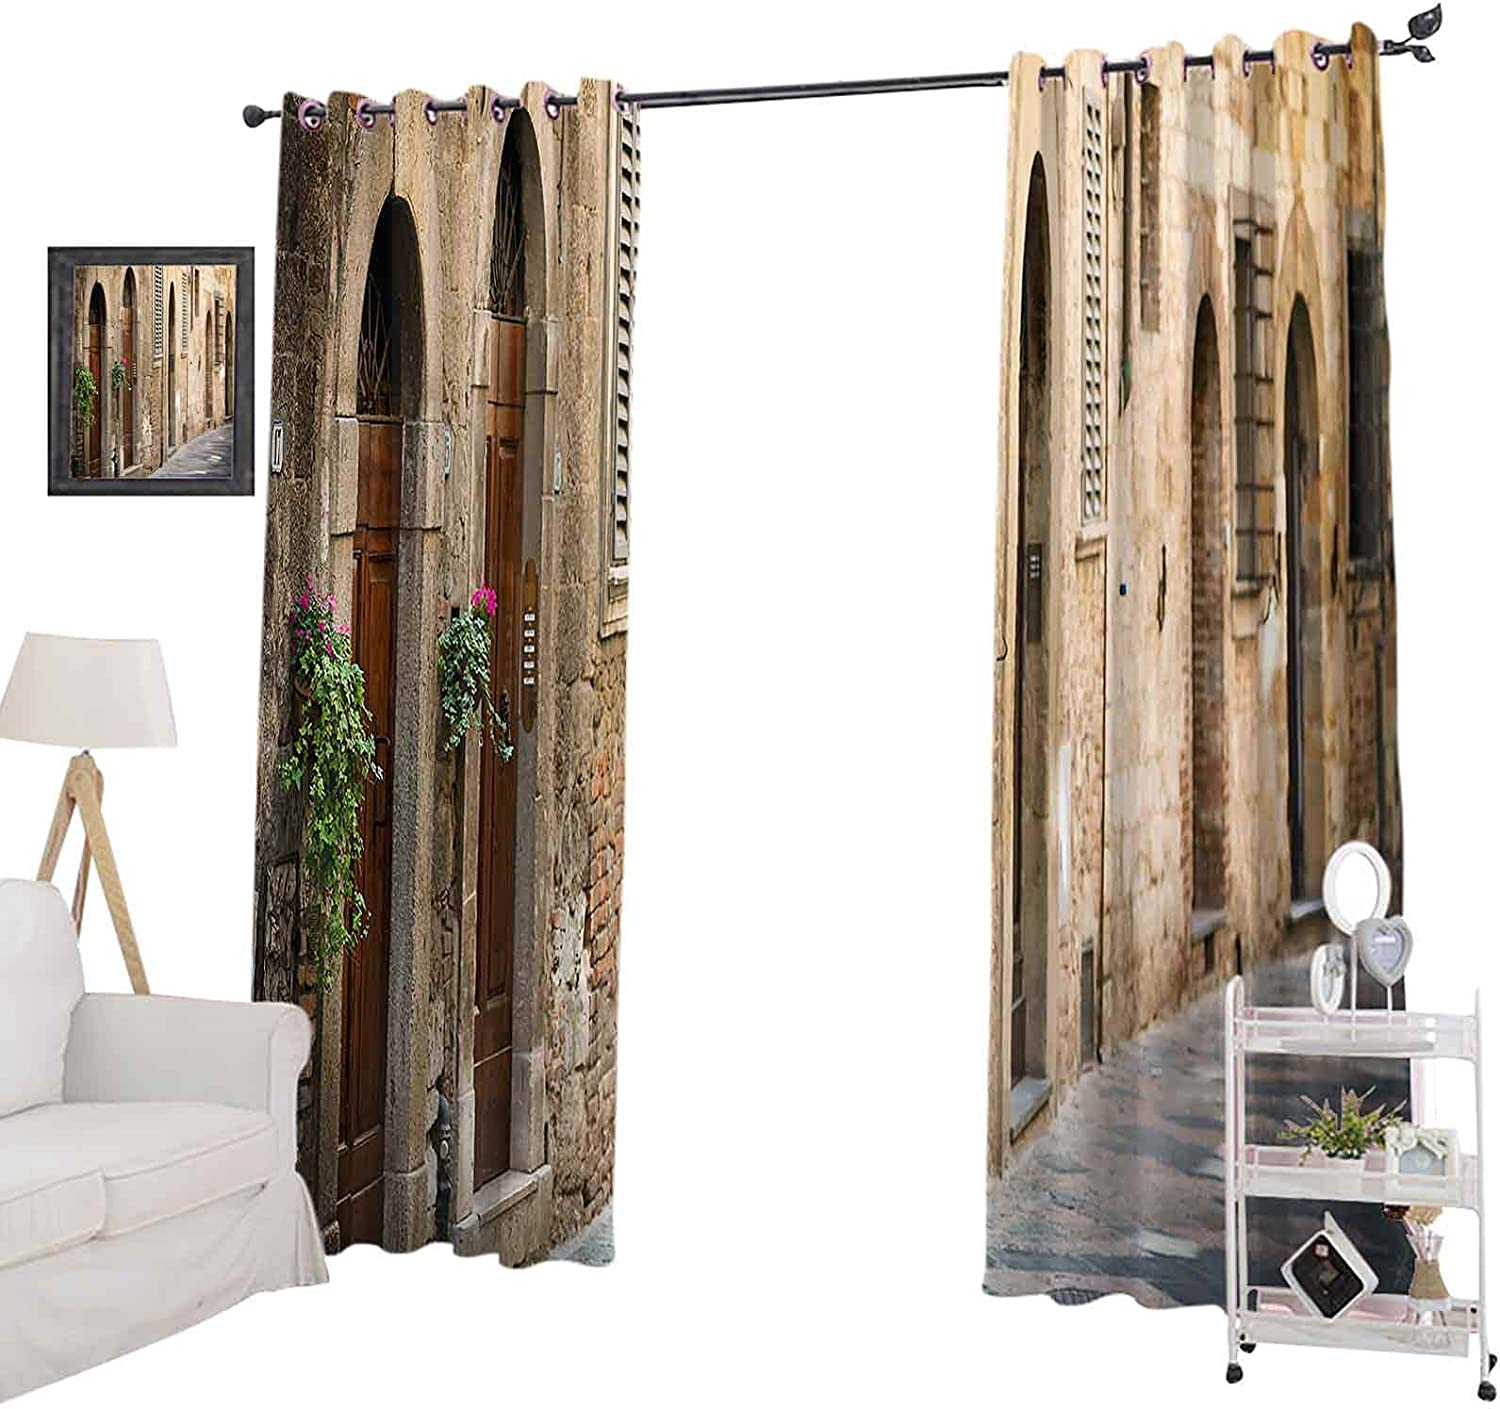 Blackout Curtains Max 82% OFF for Easy-to-use Bedroom 63 Pane Window Inches Curtain Long